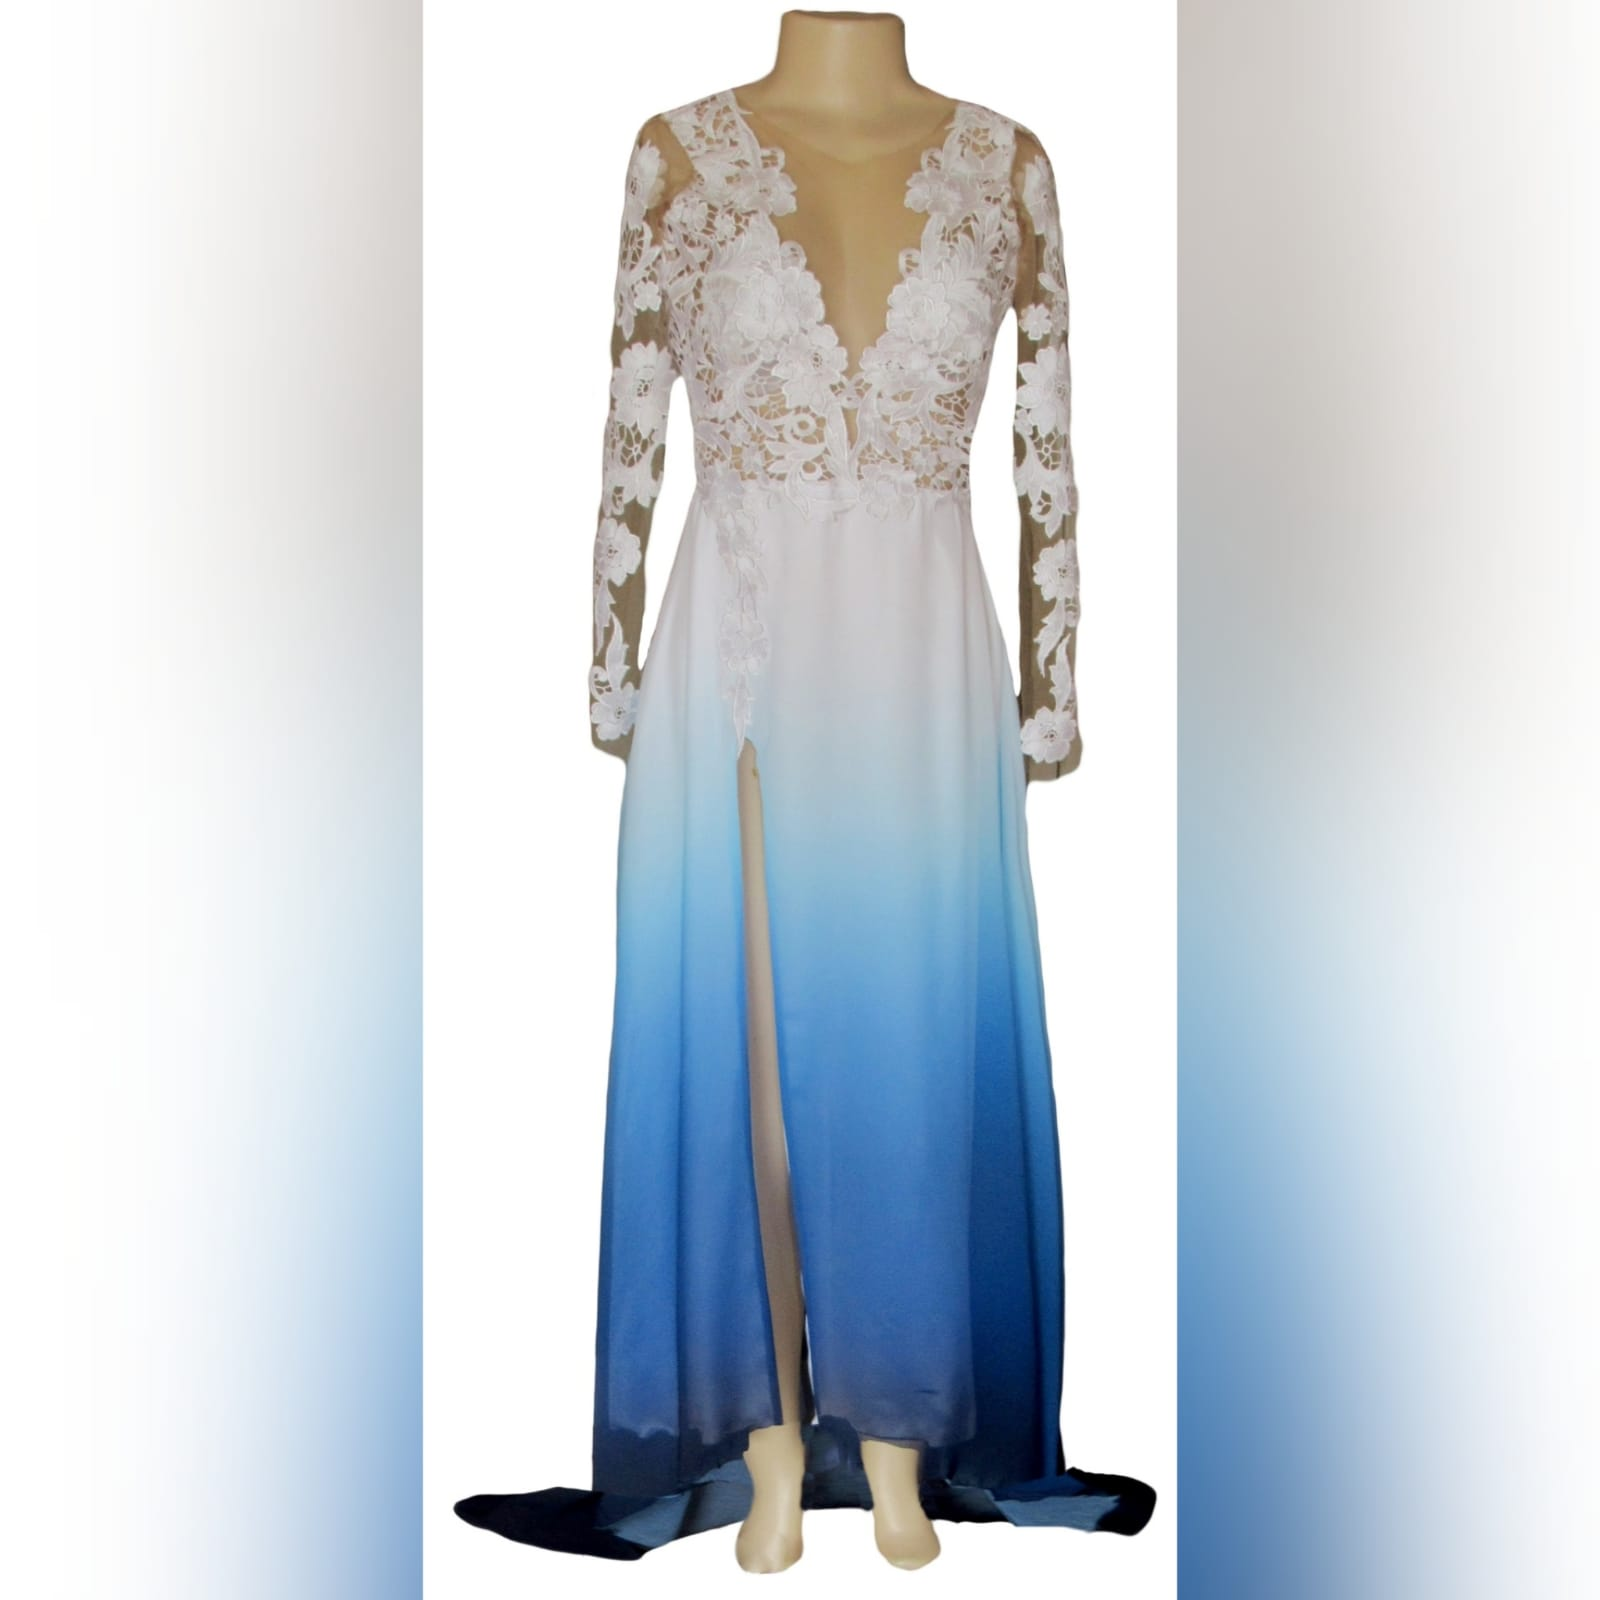 Gorgeous blue and white ombre flowy ceremony dress 4 a gorgeous blue and white ombre flowy ceremony dress created for a prom night. With a classy white bodice with elegant illusion lace sleeves. With a slit and a train